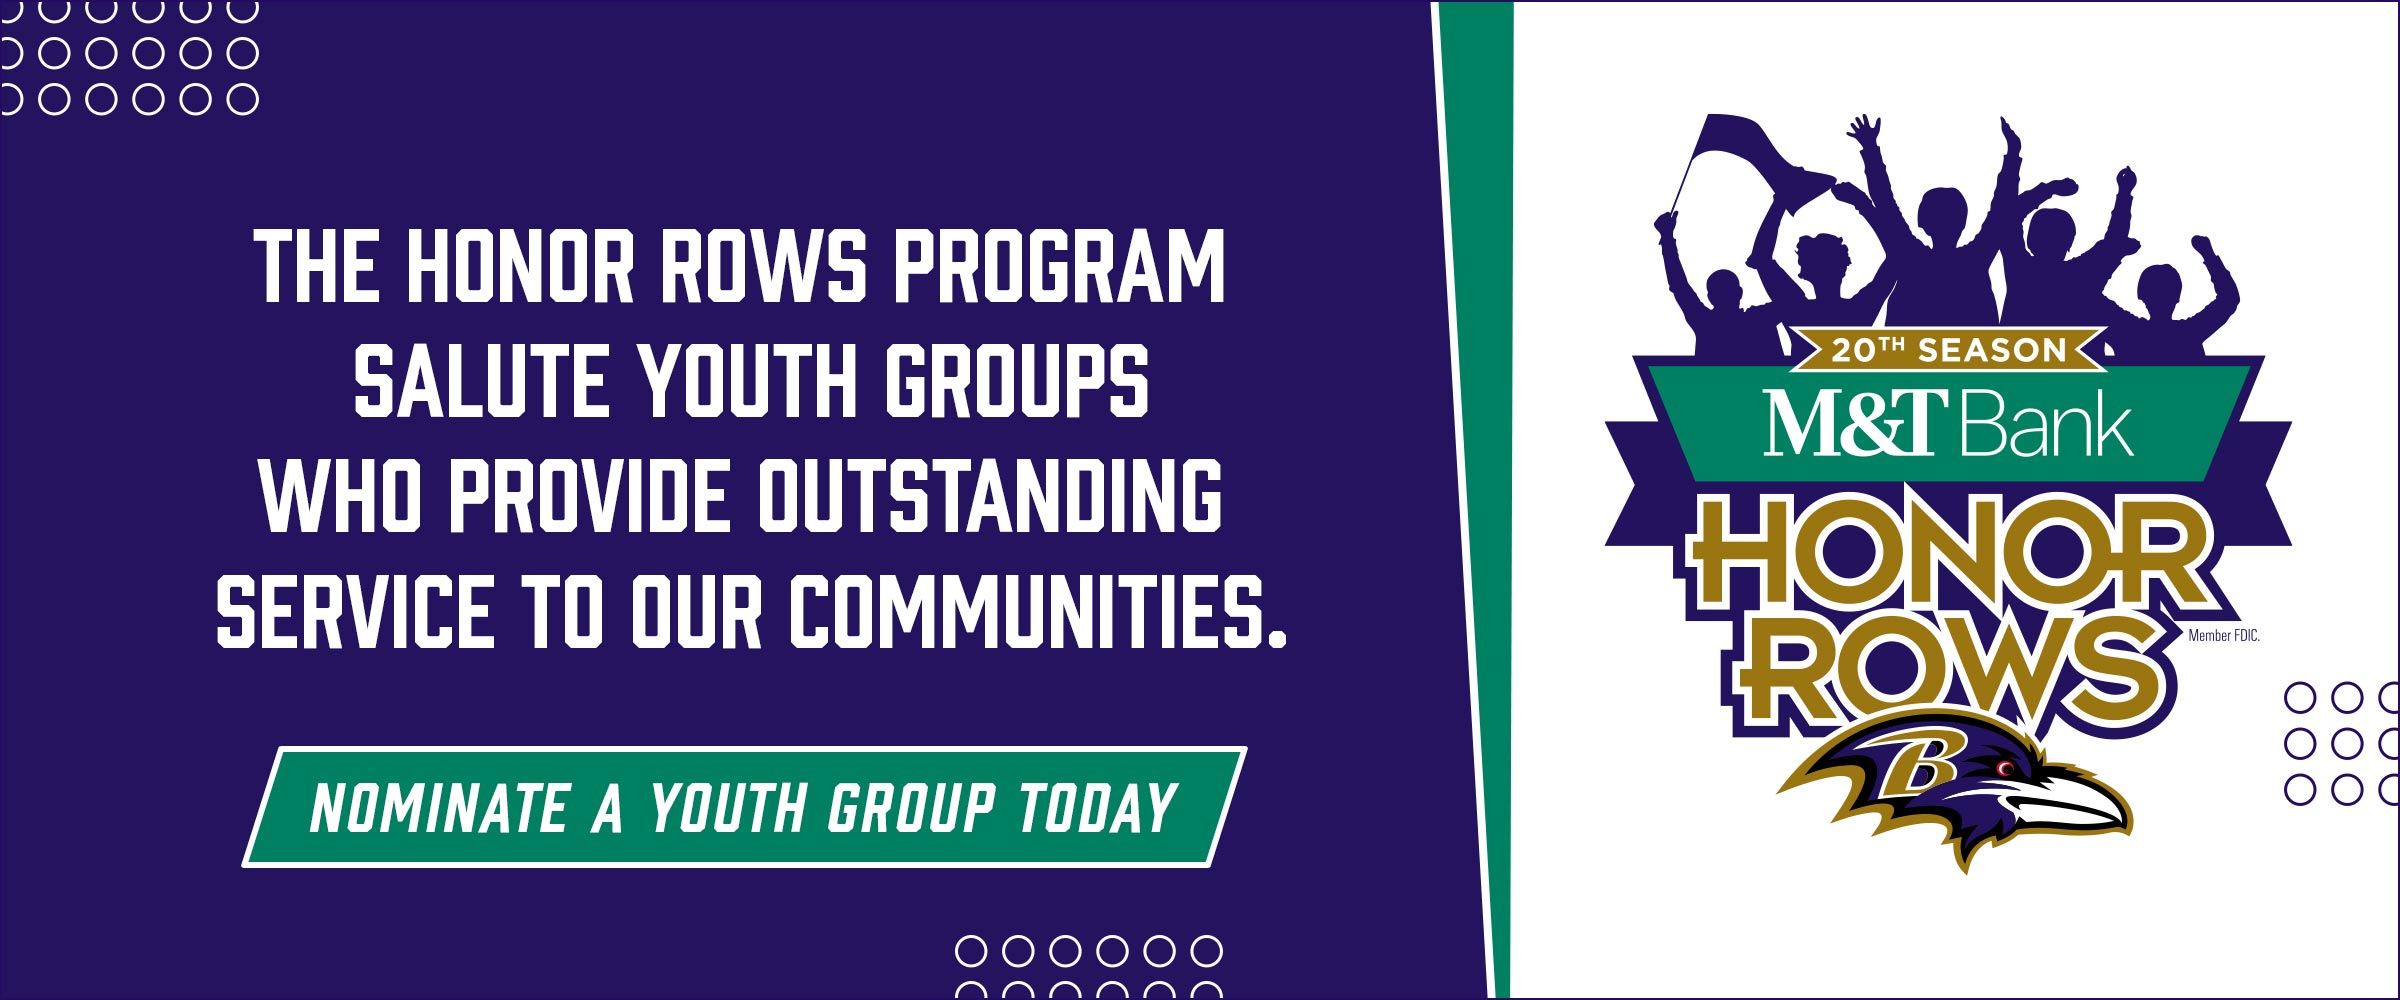 Nominate a Youth Group